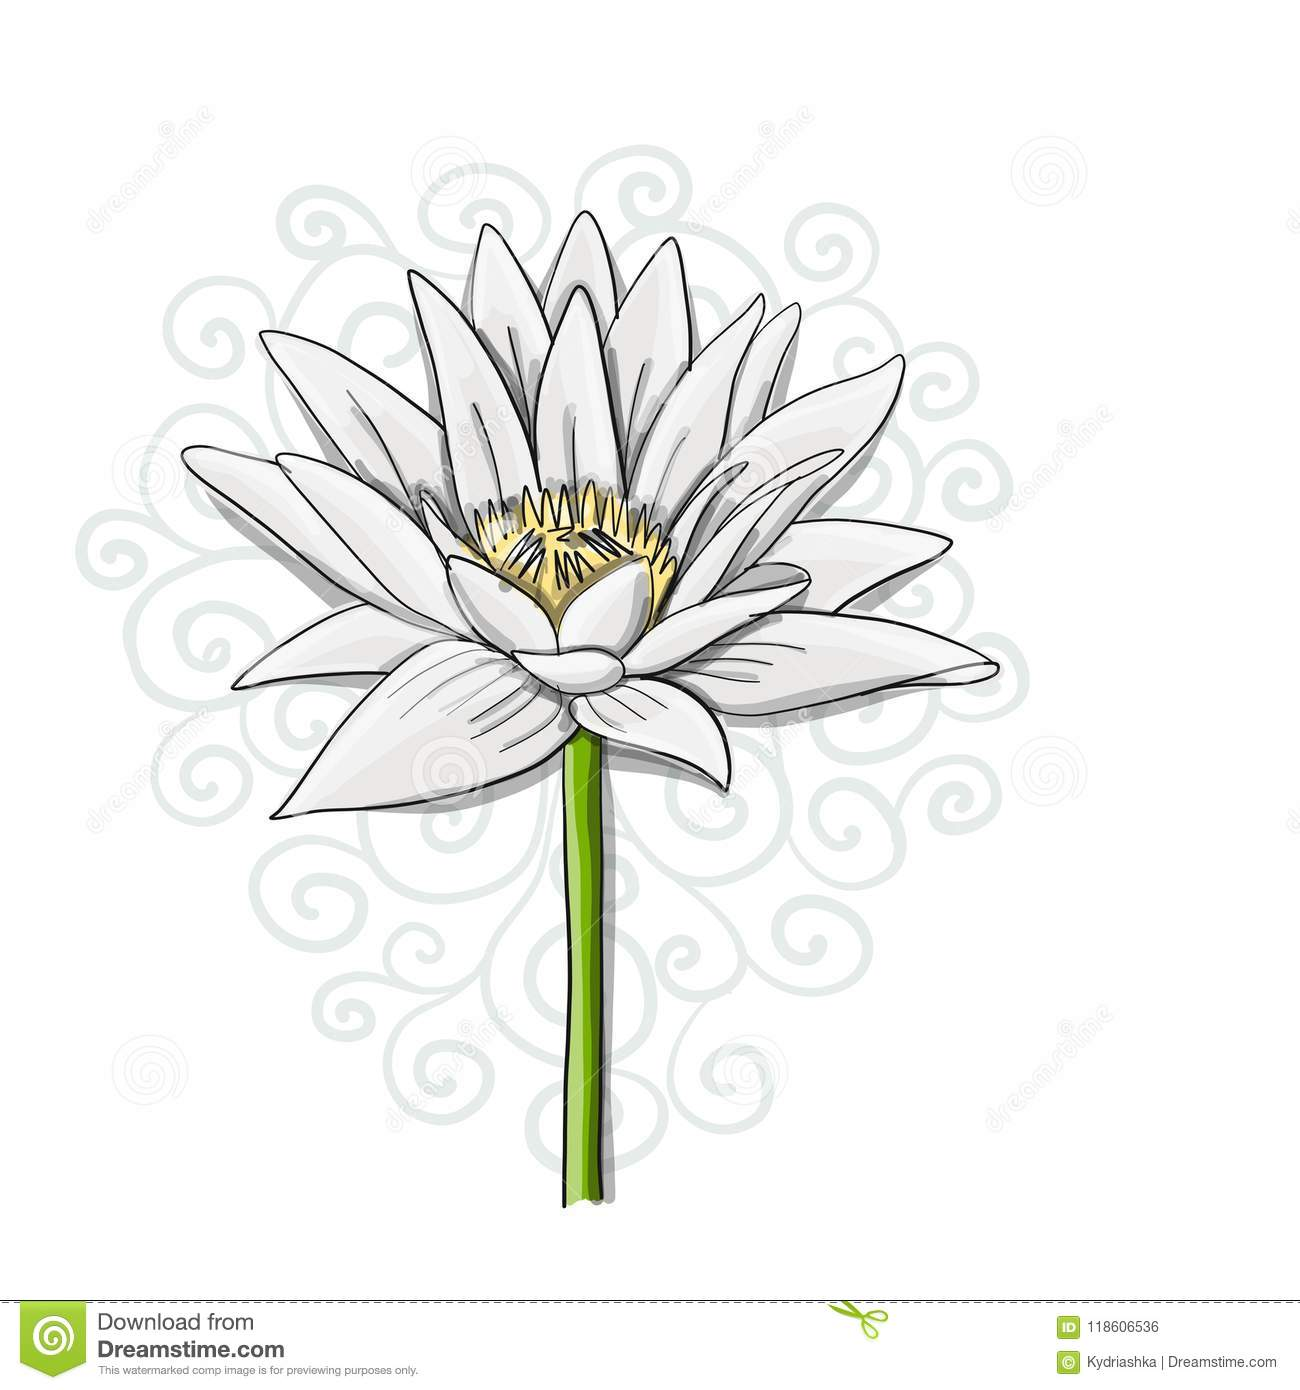 Lily Flower Sketch Stock Illustrations 8 123 Lily Flower Sketch Stock Illustrations Vectors Clipart Dreamstime